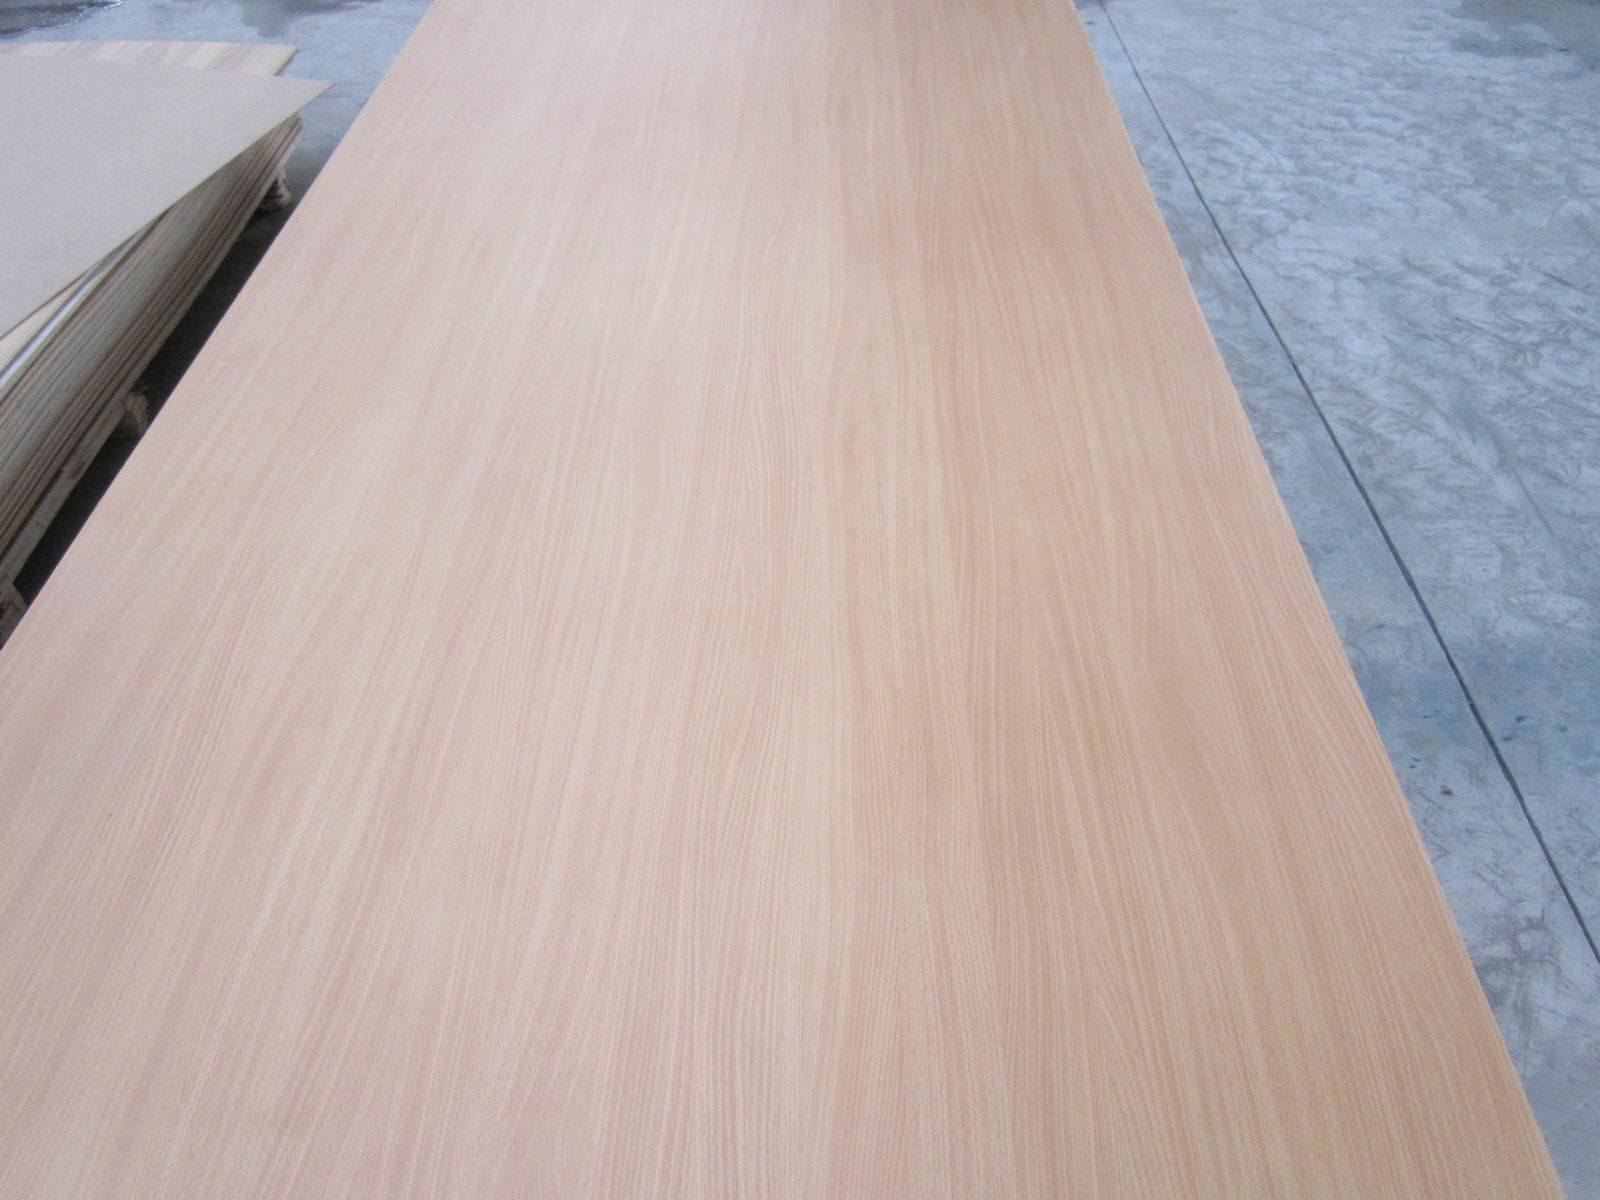 Hight Quality Melamine MDF for Furniture, Furniture MDF, Decorative MDF, AA Grade MDF, Size 4′x8′17mm